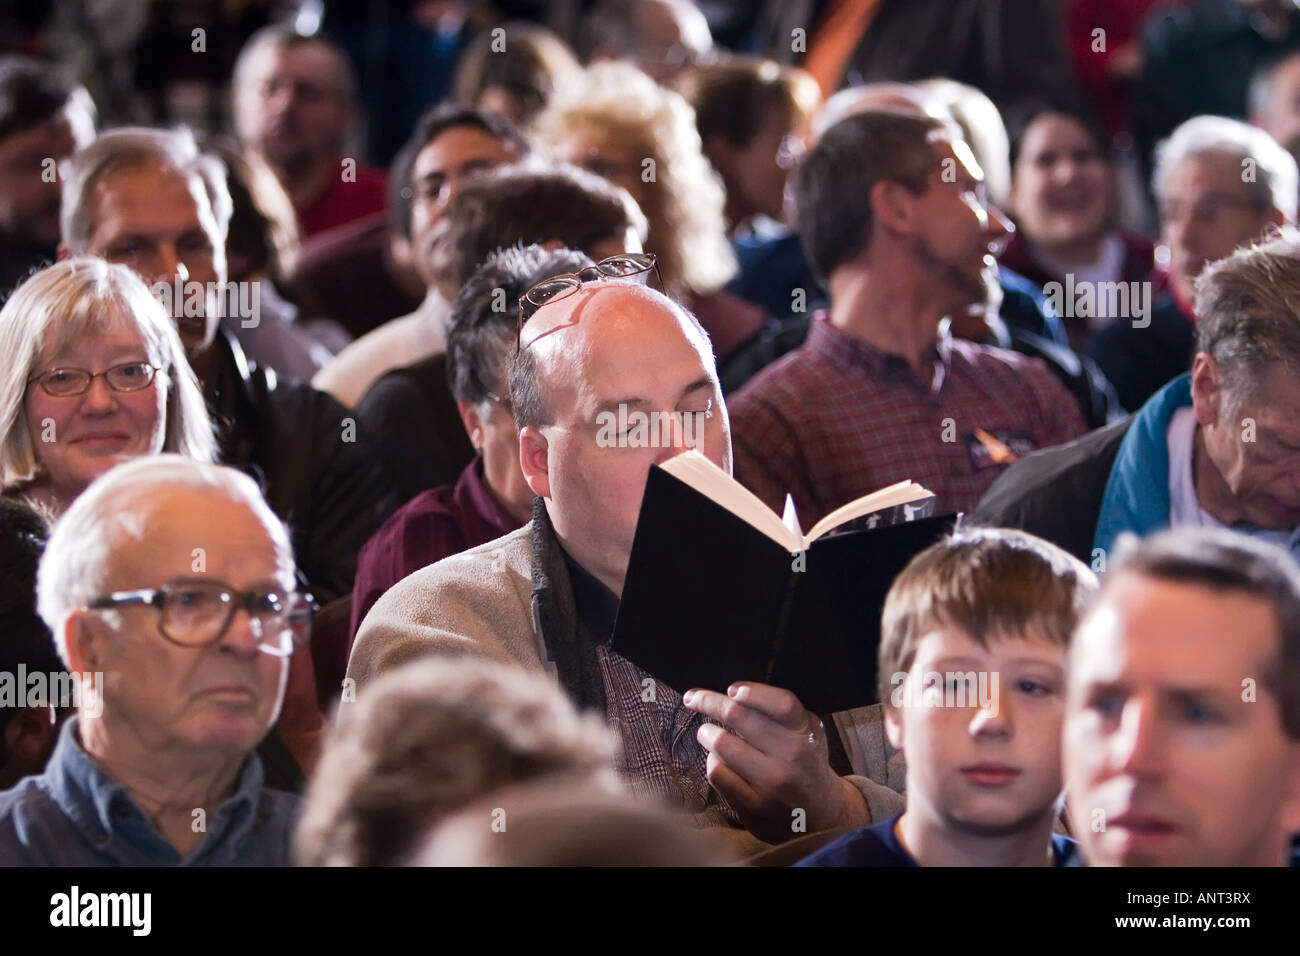 Man in crowd reads a book - Stock Image